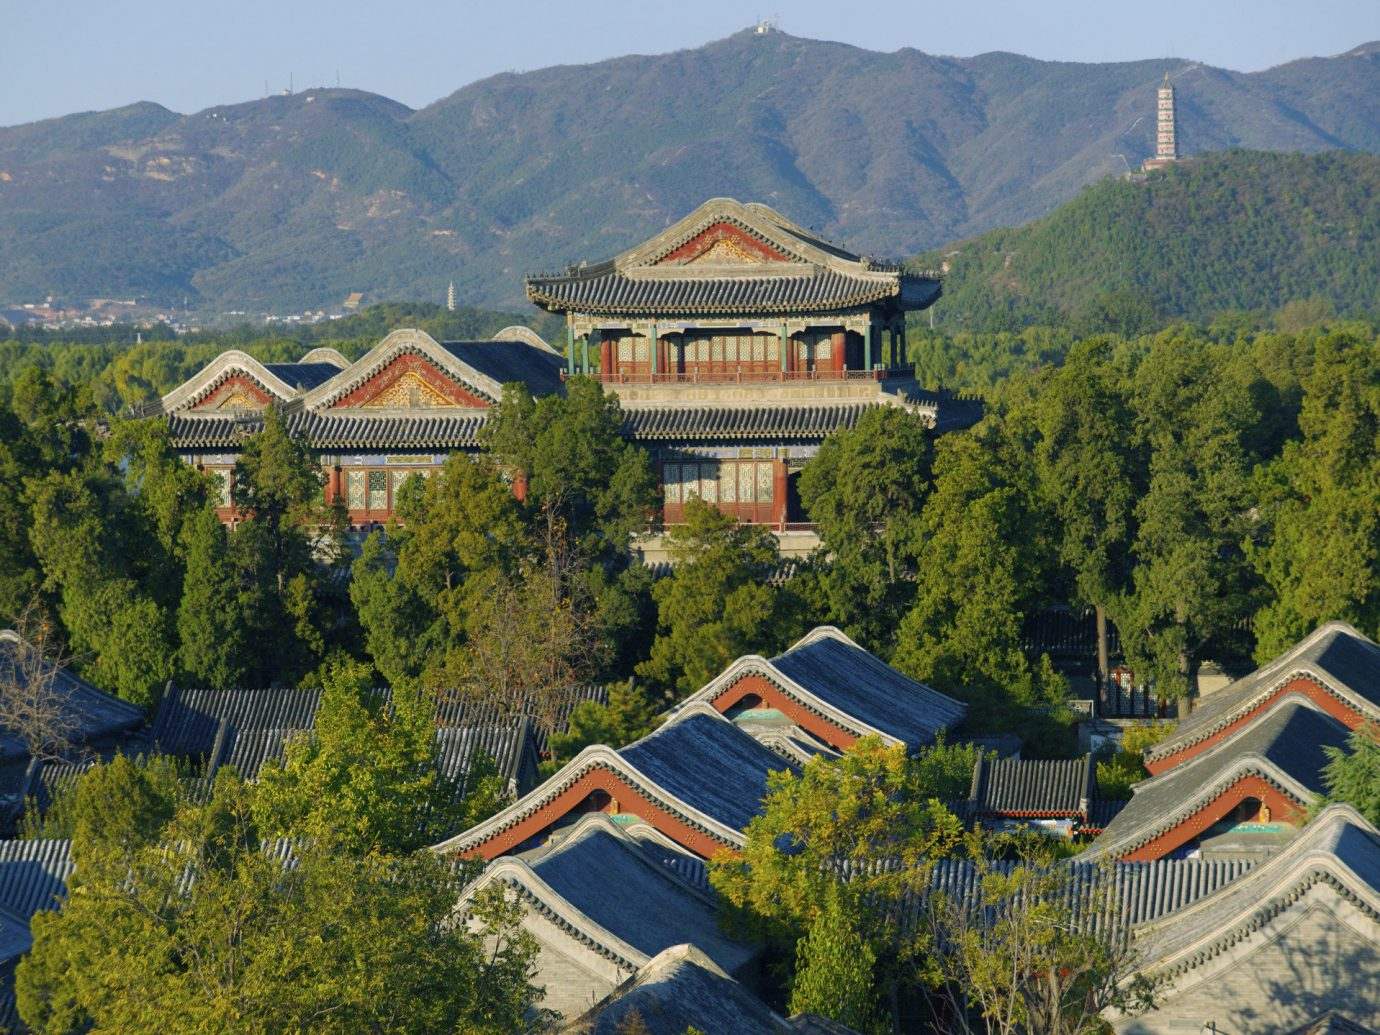 Arial view of Aman Summer Palace in Beijing